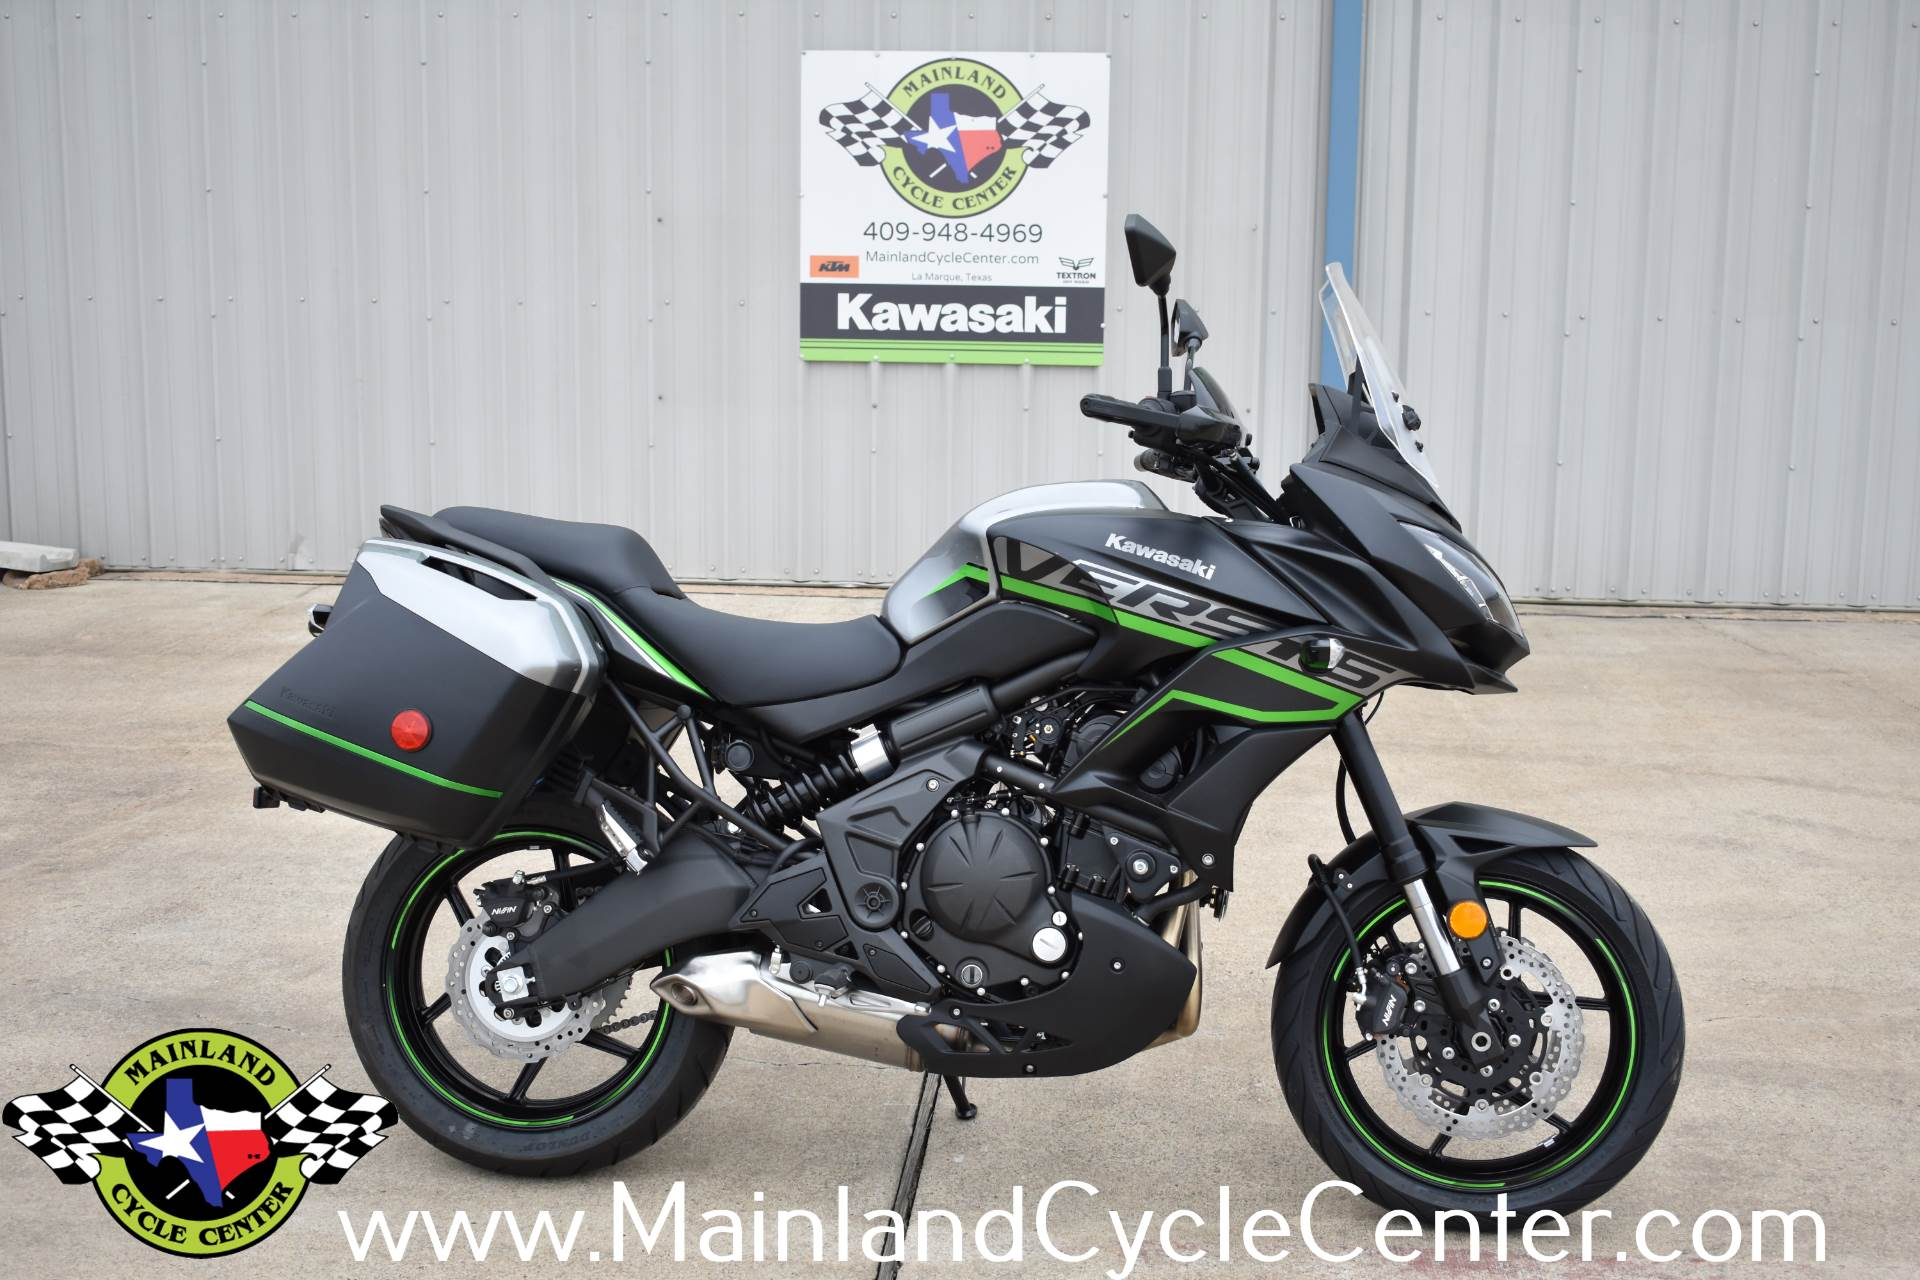 2019 Kawasaki Versys 650 LT in La Marque, Texas - Photo 1